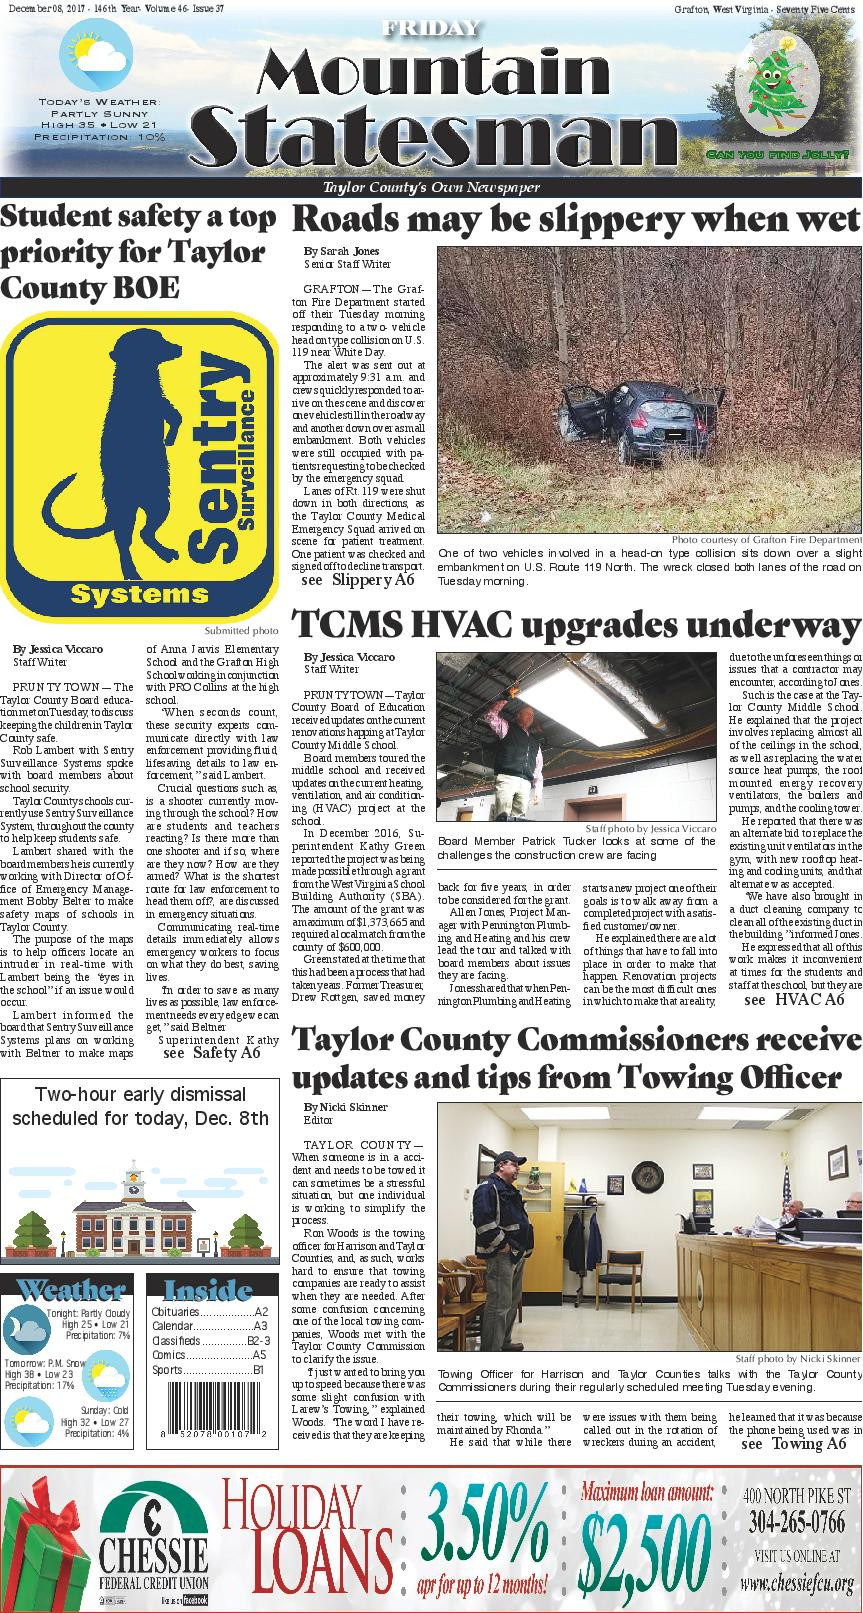 Student Safety A Top Priority For Taylor County BOE